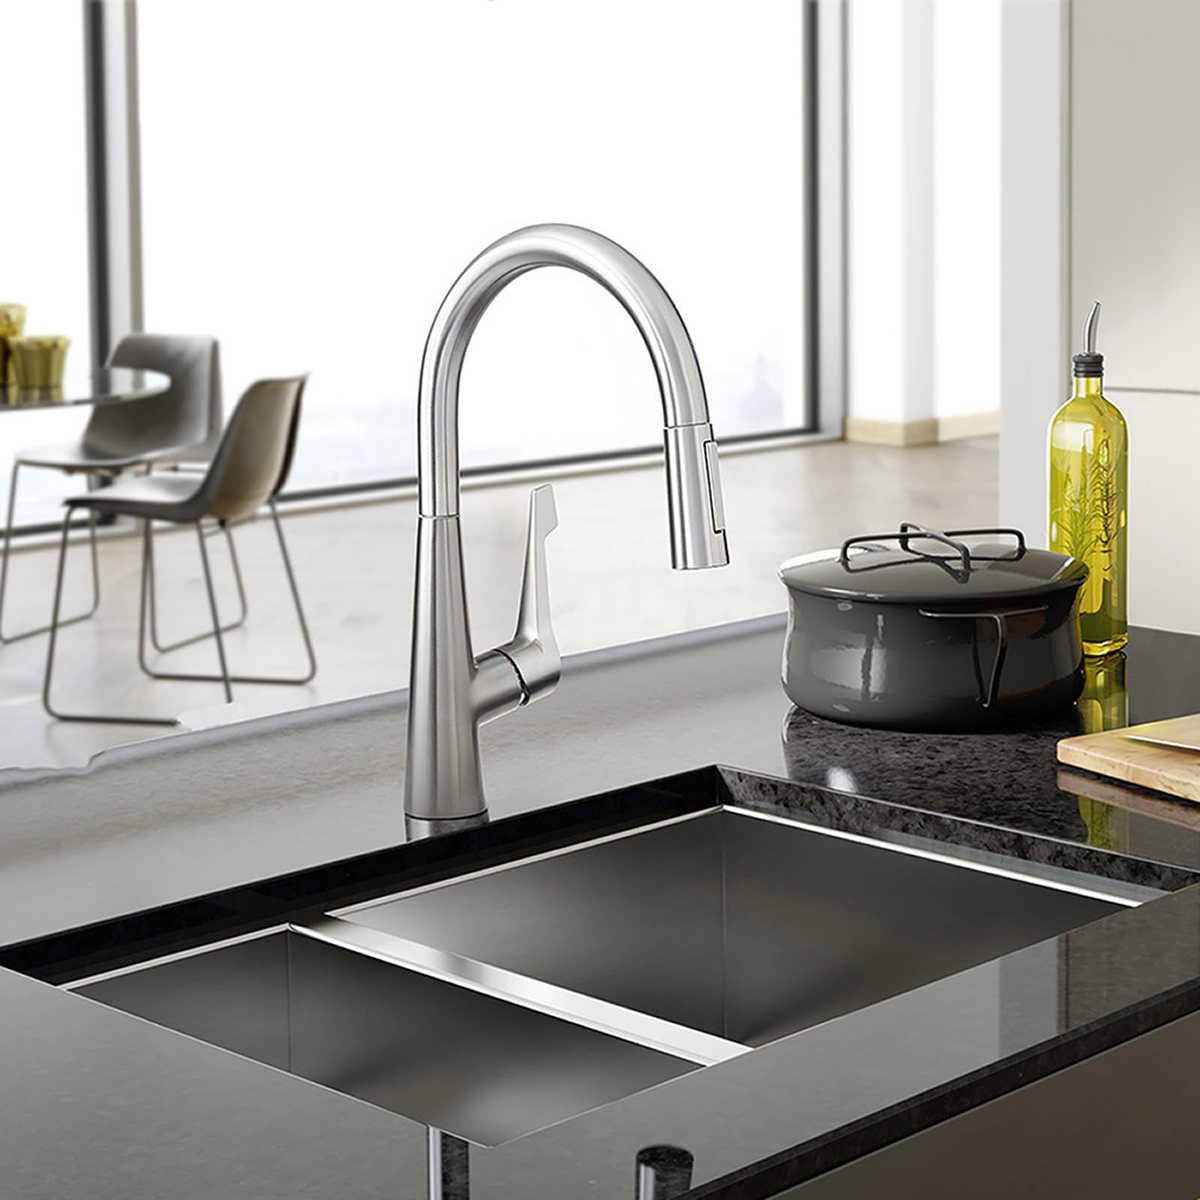 awesome of kitchen faucets marble and best furniture black moen costco stainless faucet countertop